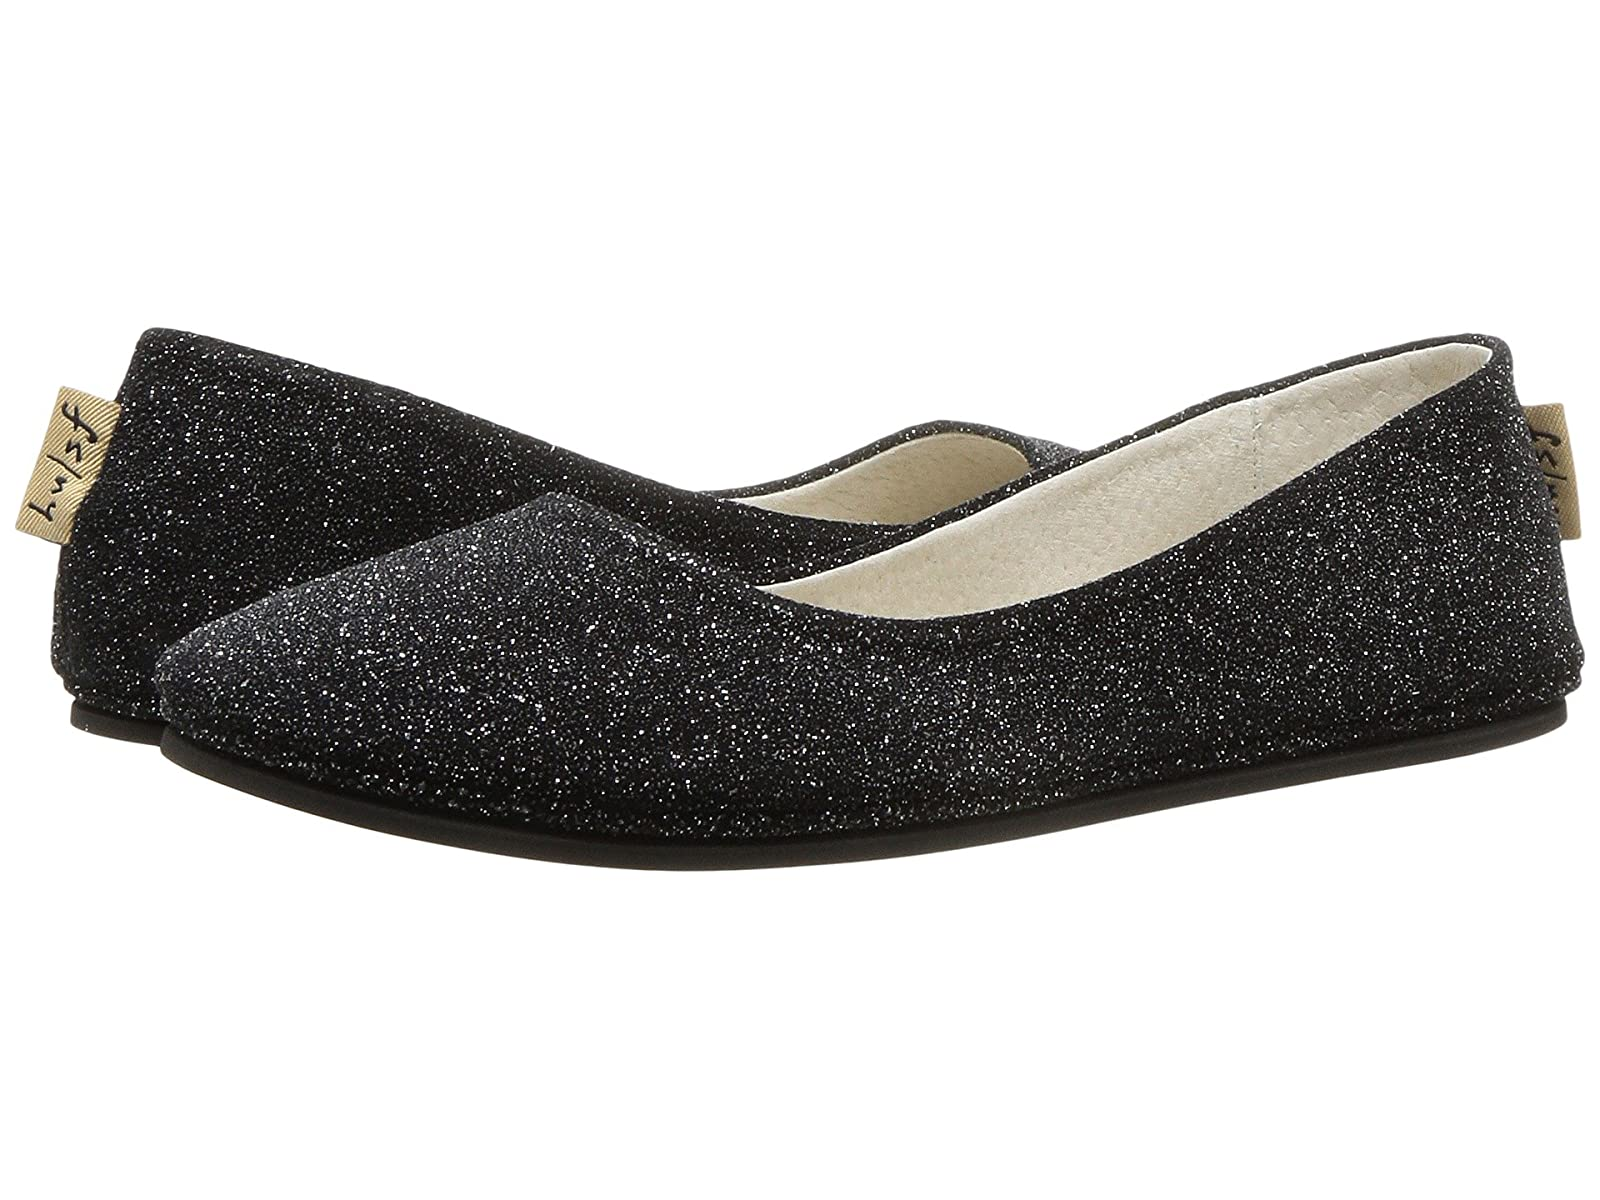 French Sole Sloop FlatAtmospheric grades have affordable shoes